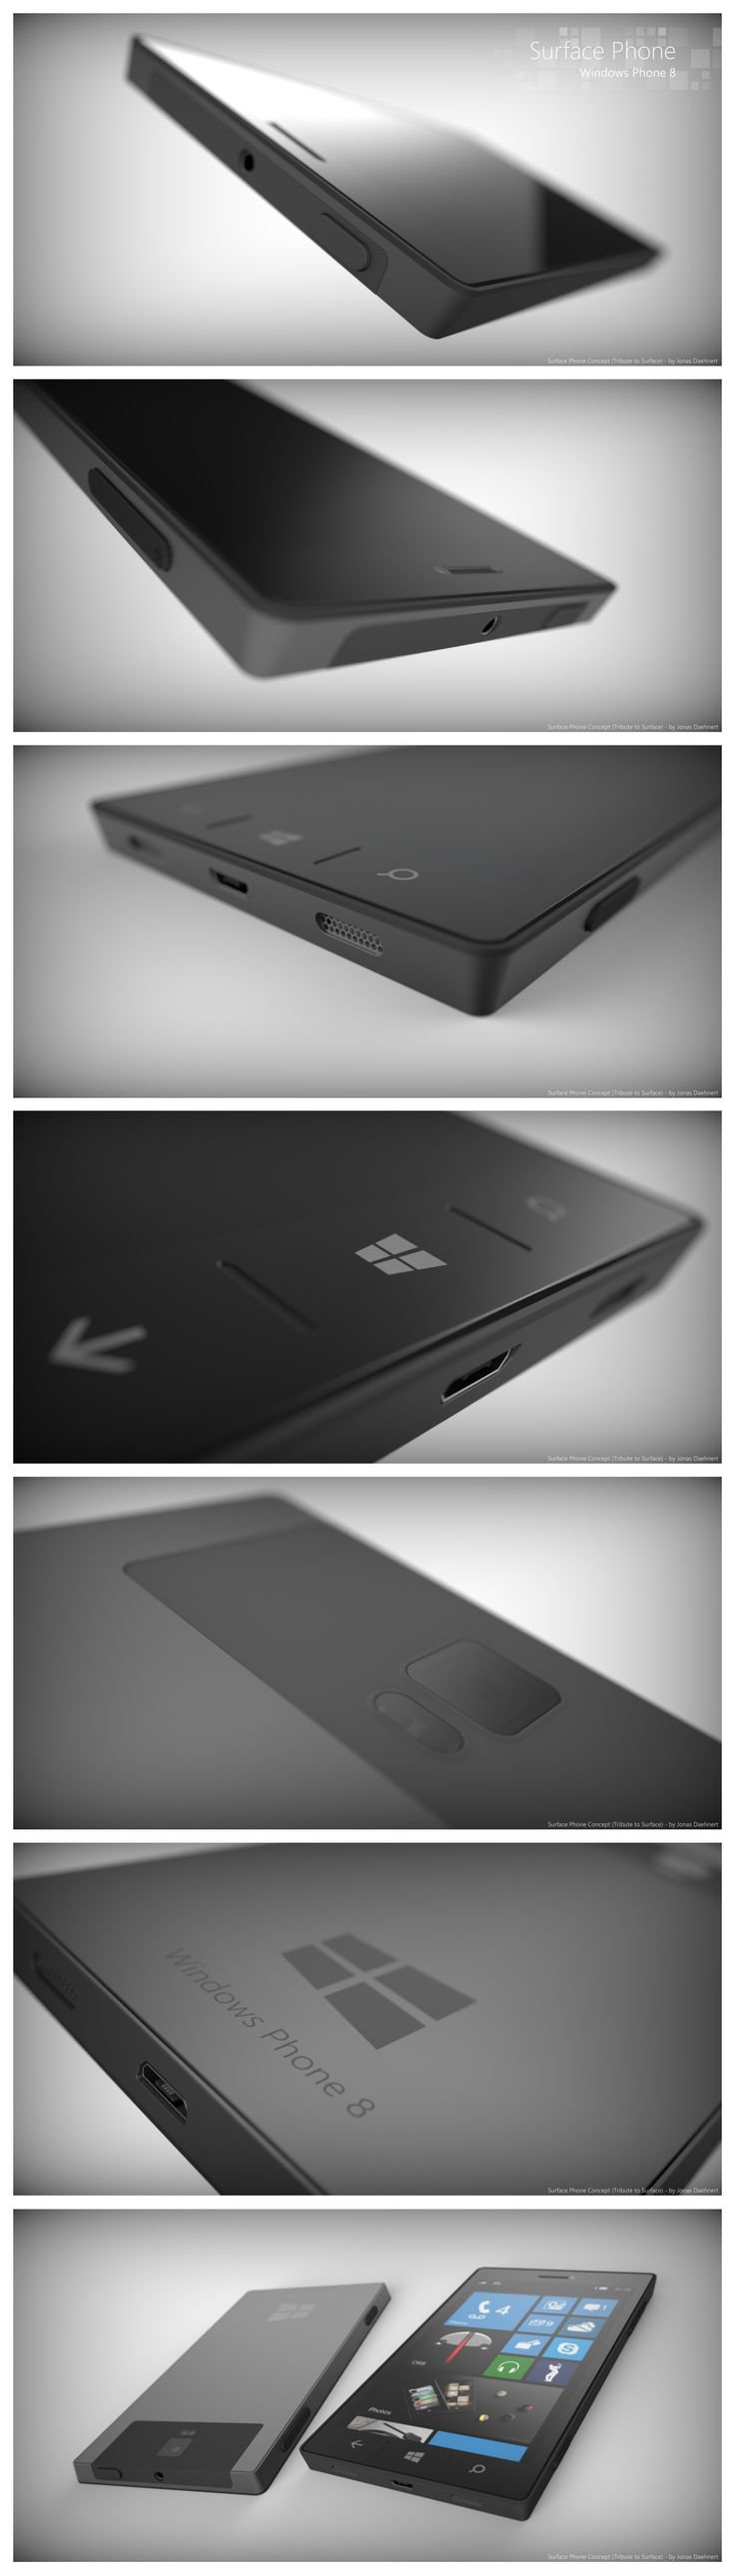 iClarified - Apple News - Windows 8 Surface Phone Concept [Images]